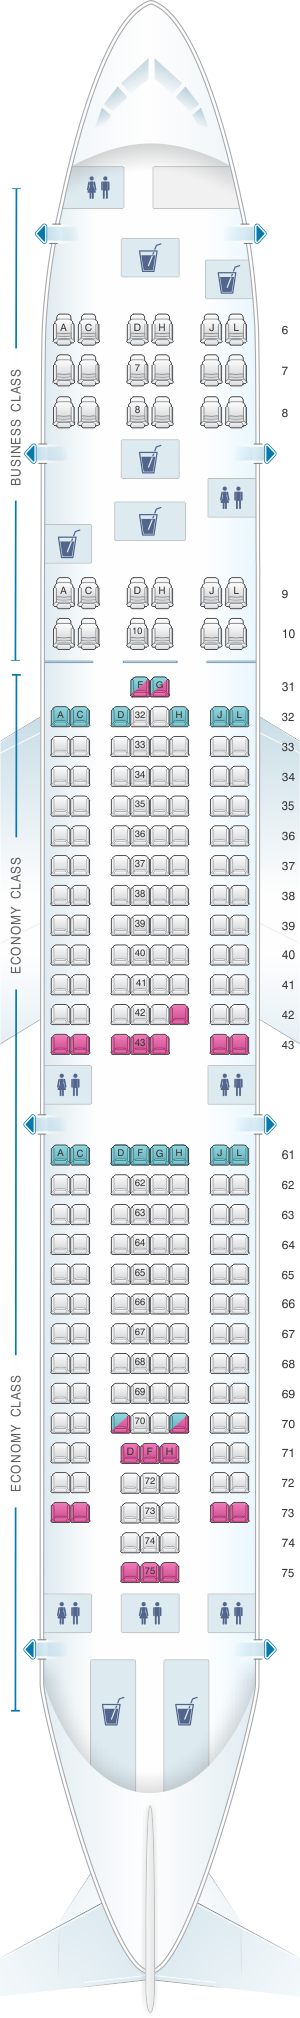 Seat Map China Eastern Airlines Airbus A330 200 config.2 ... China Eastern Airlines Seat Map on etihad airlines seat map, american airlines seat map, china airlines 777-300 economy, china eastern airlines business class, united airlines seat map, china southern airlines seat map, air china seat map, japan airlines seat map, china airlines 777-300er, iberia airlines seat map, copa airlines seat map, shanghai airlines seat map, china airlines seat selection, garuda airlines seat map, lan airlines seat map, south african airlines seat map, ethiopian airlines seat map, croatia airlines seat map, china eastern airlines route map, china eastern airlines seat assignment,